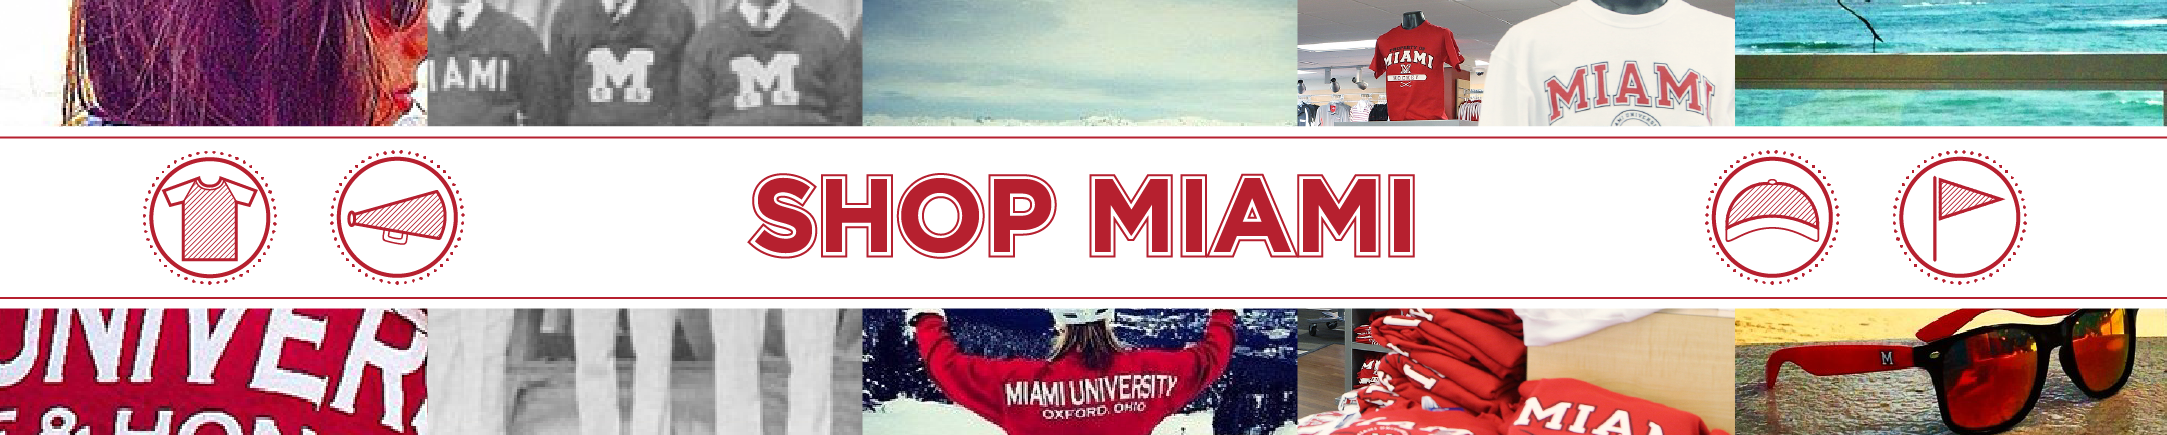 Shop Miami. Photos of a student wearing Love and Honor shirt, old photo of men in Miami sweaters, a student on a ski slope wearing a Miami University Sweatshirt, Miami shirts in the bookstore, and Miami sunglasses on a beach